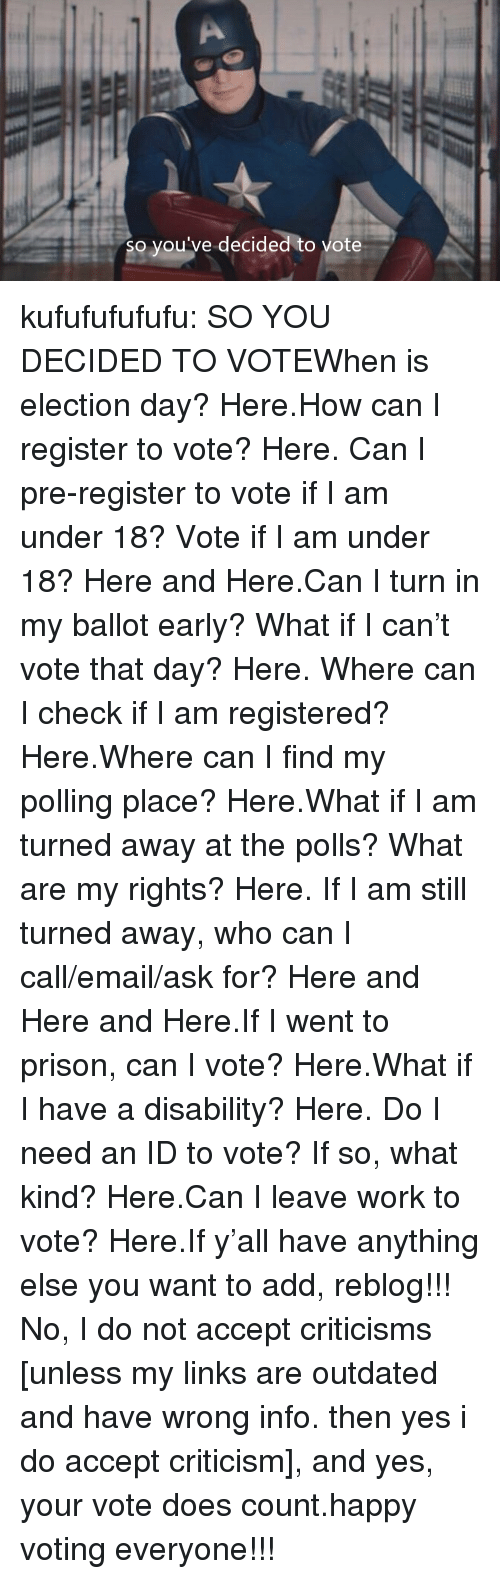 Tumblr, Twitter, and Work: so you've decided to vote kufufufufufu:  SO YOU DECIDED TO VOTEWhen is election day? Here.How can I register to vote? Here. Can I pre-register to vote if I am under 18? Vote if I am under 18? Here and Here.Can I turn in my ballot early? What if I can't vote that day? Here. Where can I check if I am registered? Here.Where can I find my polling place? Here.What if I am turned away at the polls? What are my rights? Here. If I am still turned away, who can I call/email/ask for? Here and Here and Here.If I went to prison, can I vote? Here.What if I have a disability? Here. Do I need an ID to vote? If so, what kind? Here.Can I leave work to vote? Here.If y'all have anything else you want to add, reblog!!! No, I do not accept criticisms [unless my links are outdated and have wrong info. then yes i do accept criticism], and yes, your vote does count.happy voting everyone!!!